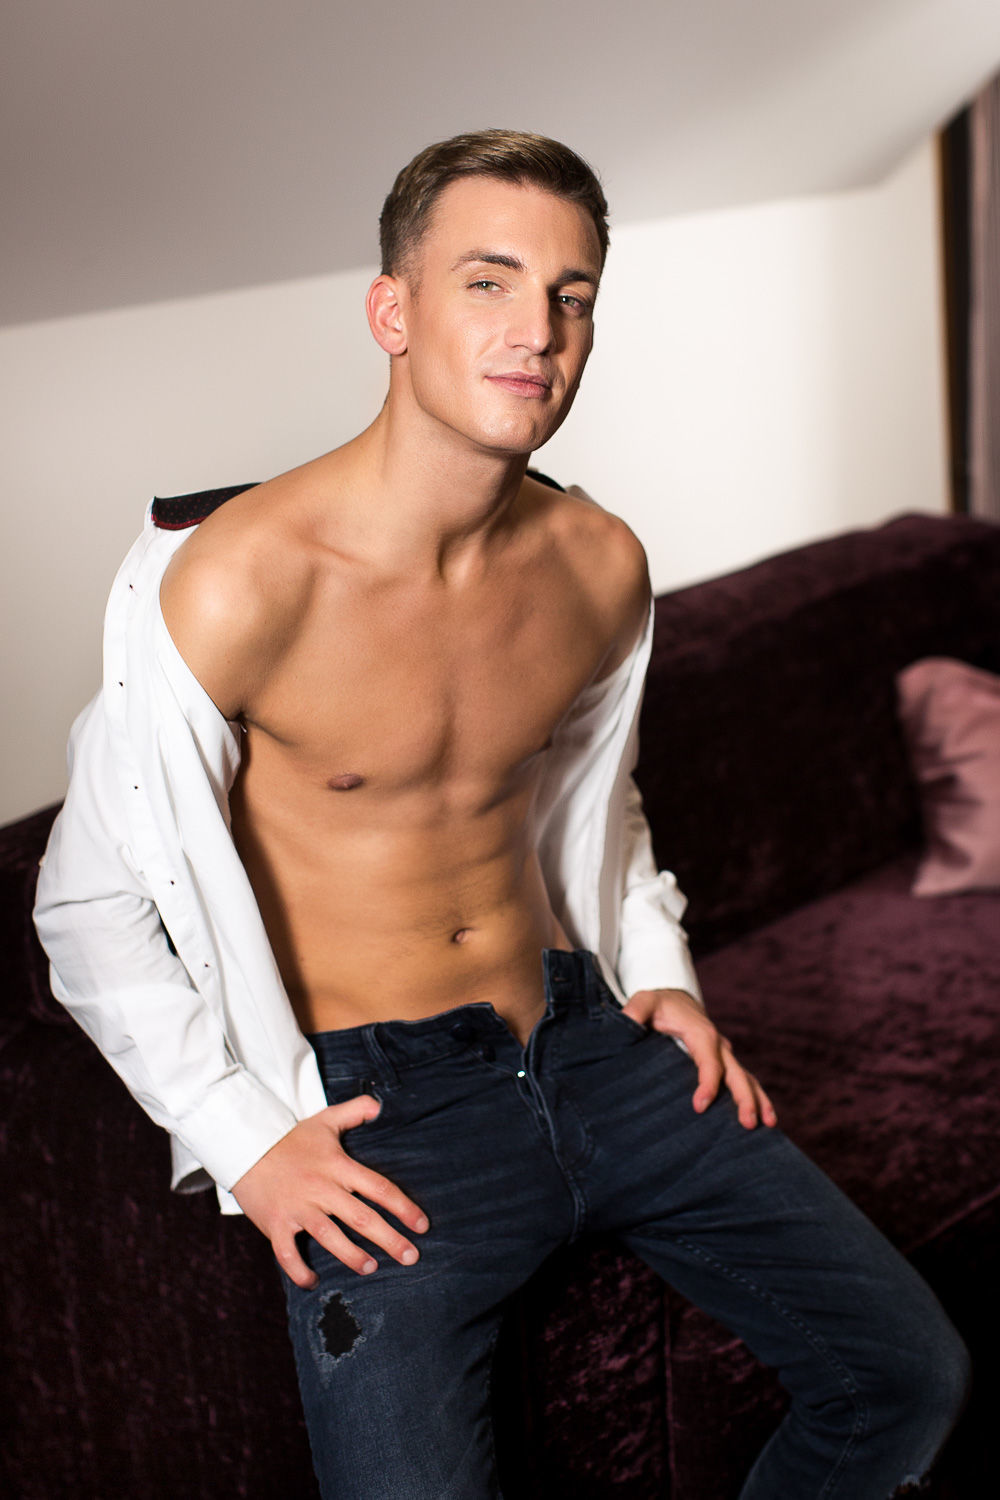 from Rocco czech gay escort